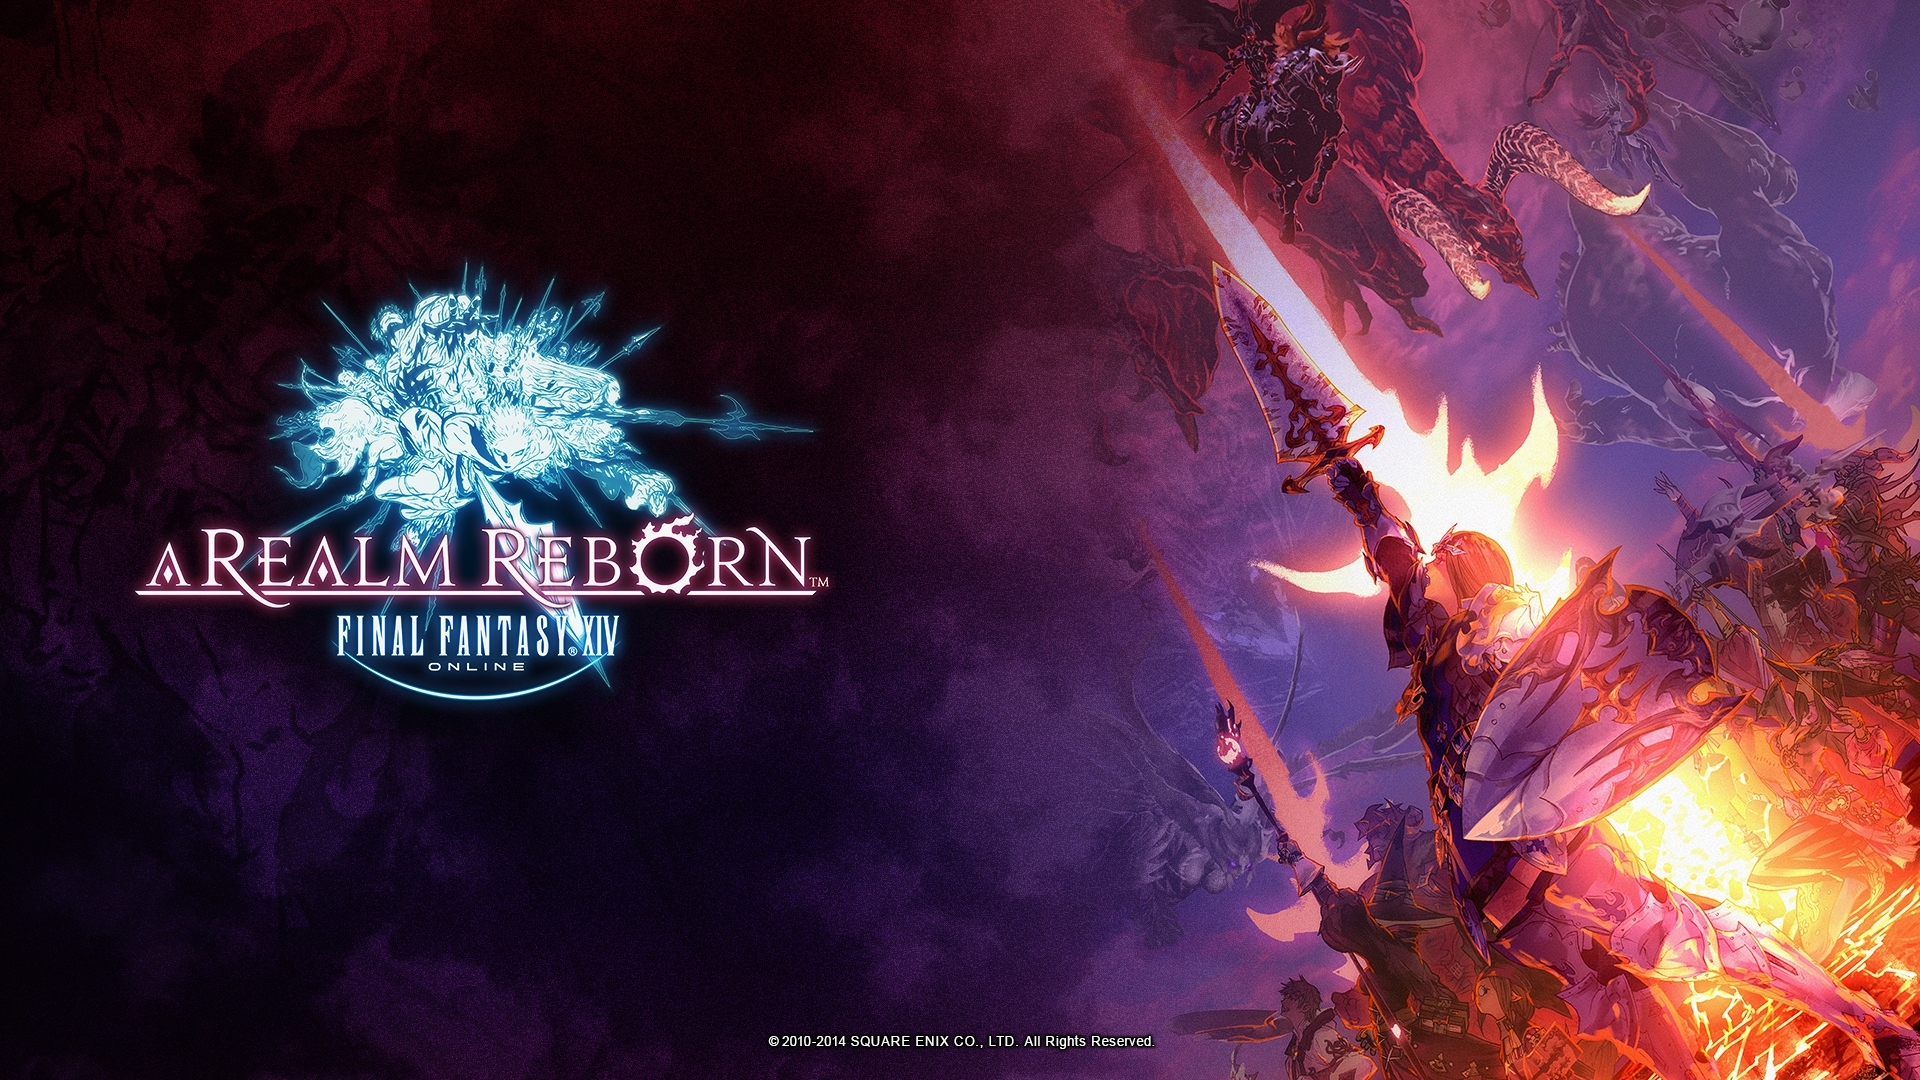 new final fantasy xiv: a realm reborn illustrations make for perfect